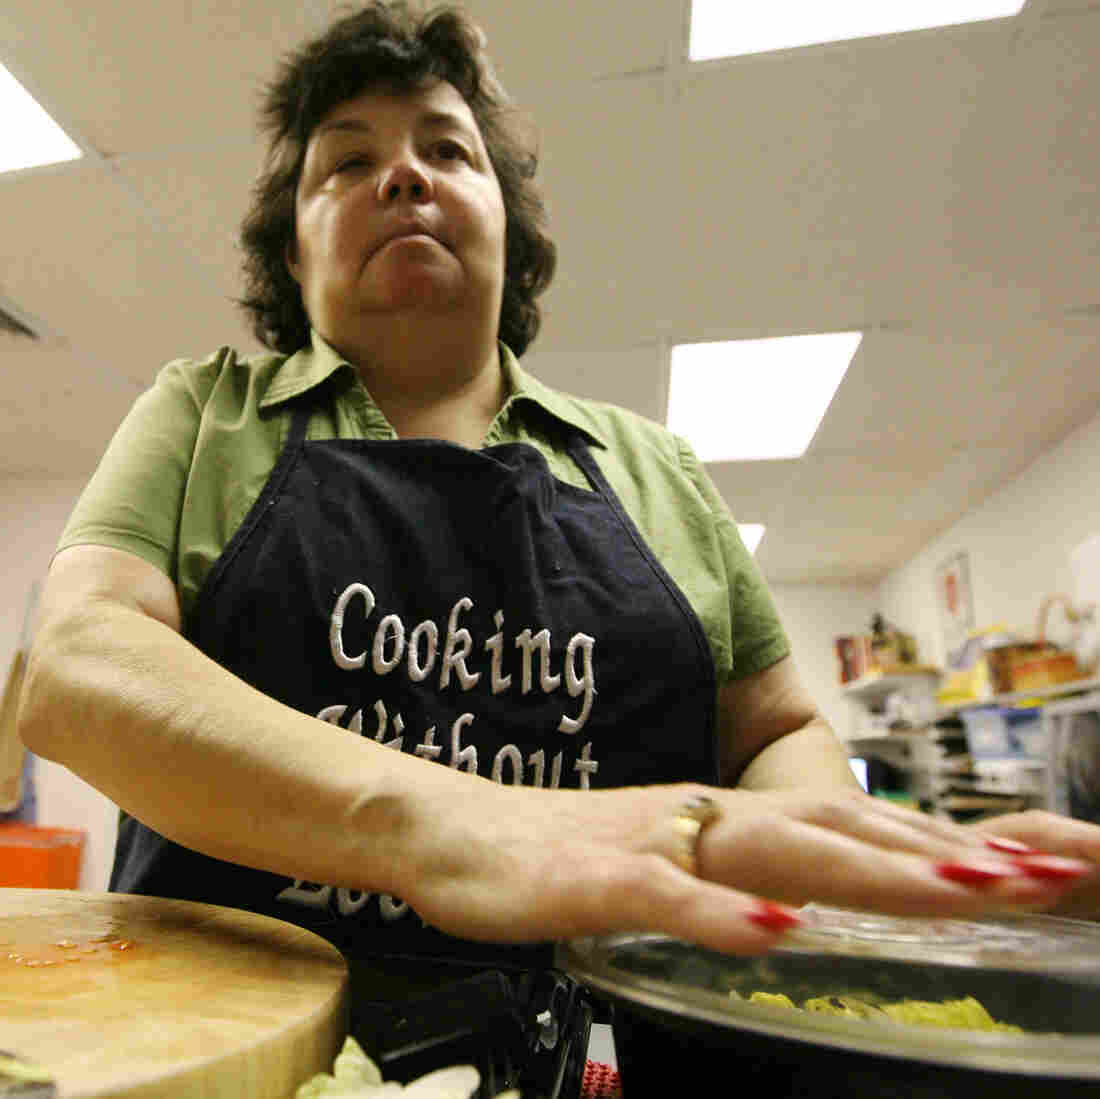 Celia Chacon, a former host of Cooking Without Looking, in the kitchen at Lighthouse of Broward, Fort Lauderdale, Fla., in 2008.  The television cooking show features chefs and guests who are blind or visually impaired.